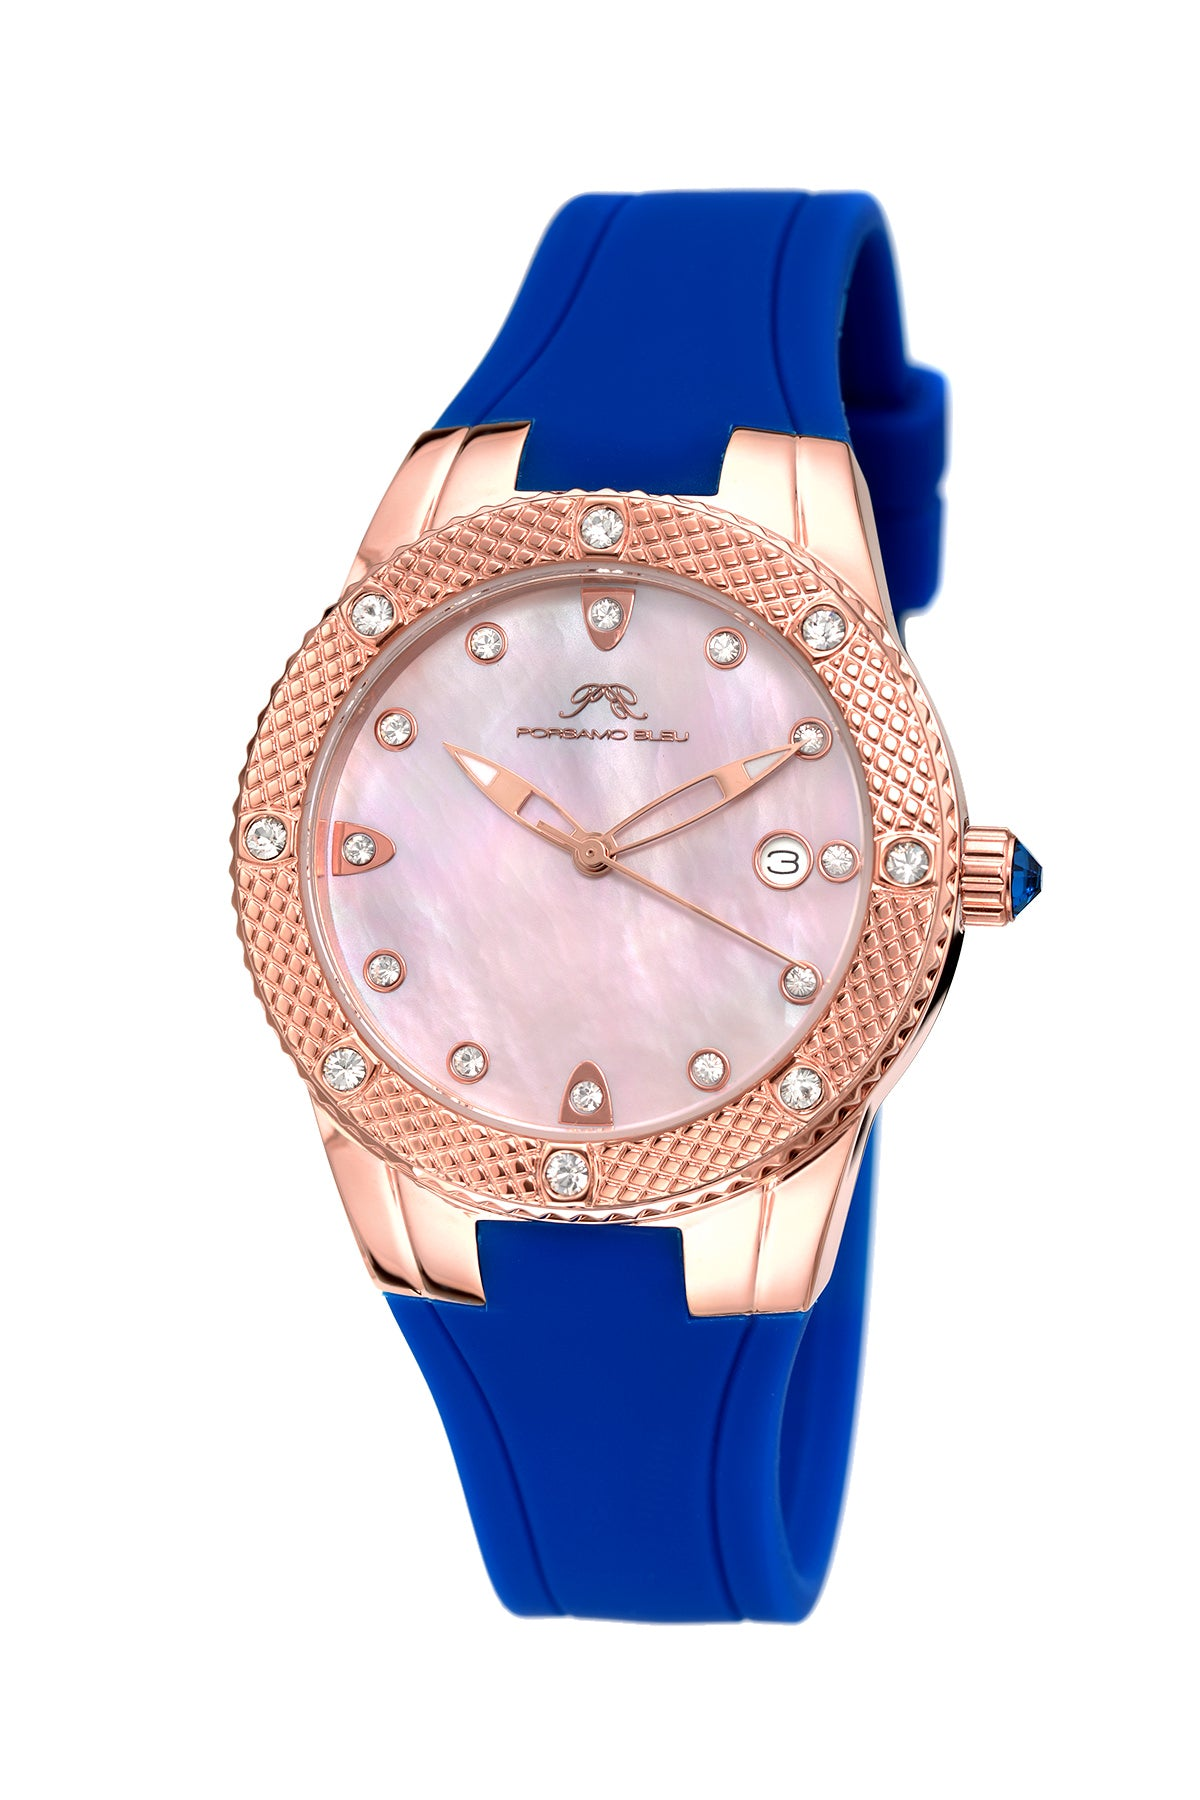 Porsamo Bleu Linda luxury women's watch, silicone strap, rose, blue 492CLIR